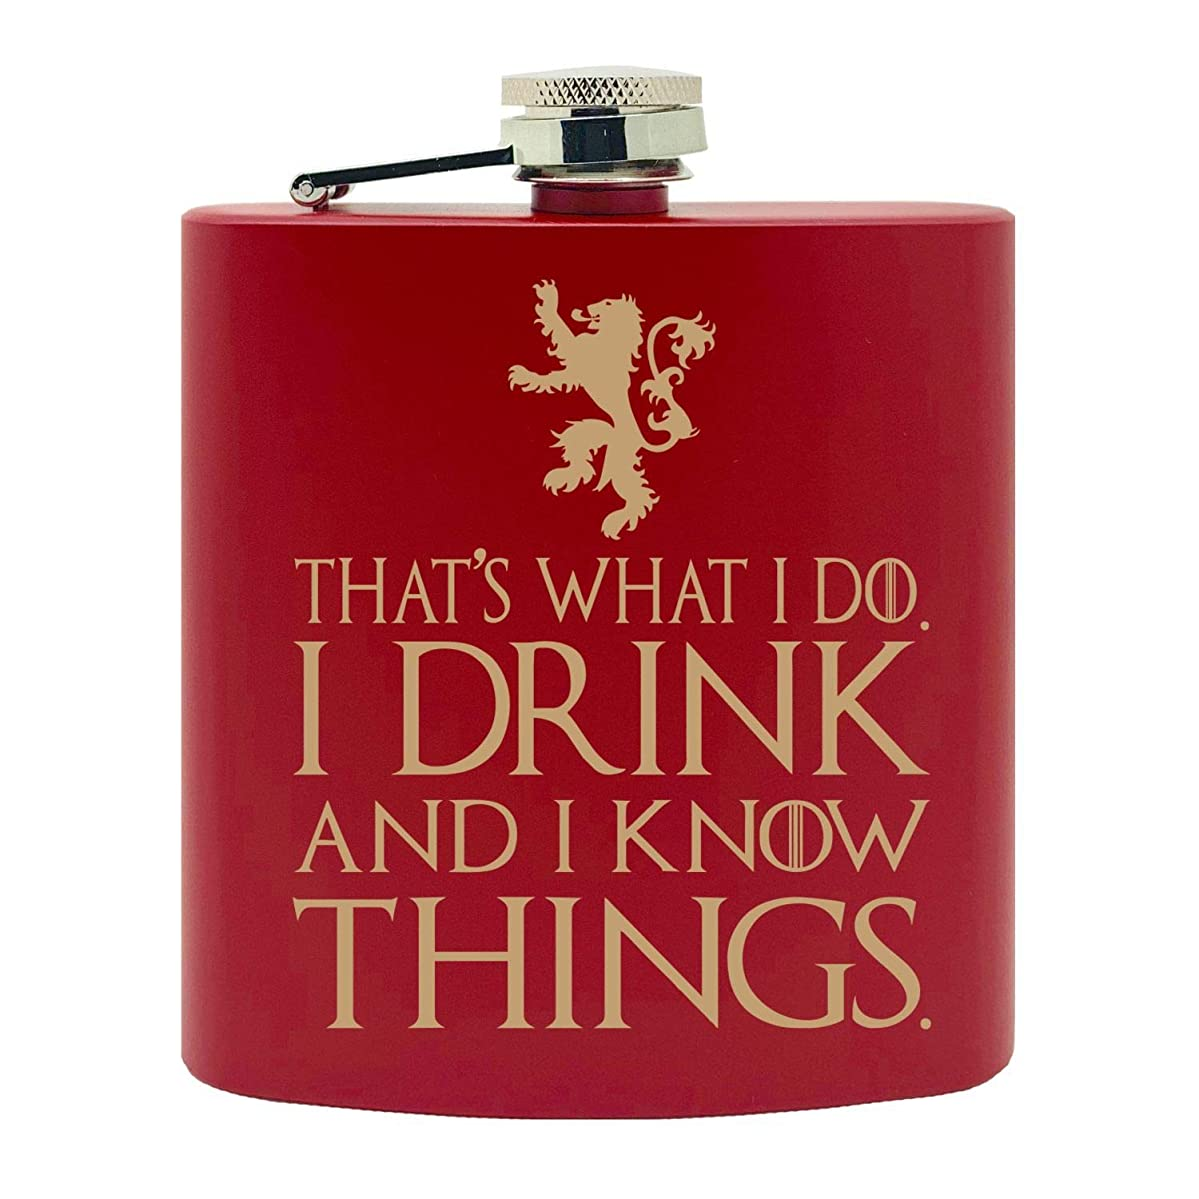 That's What I Do, I Drink and I know Things GoT Inspired Golden Lion Design Custom Printed Stainless Steel Alcohol Hip Flask, 6 Oz. Red